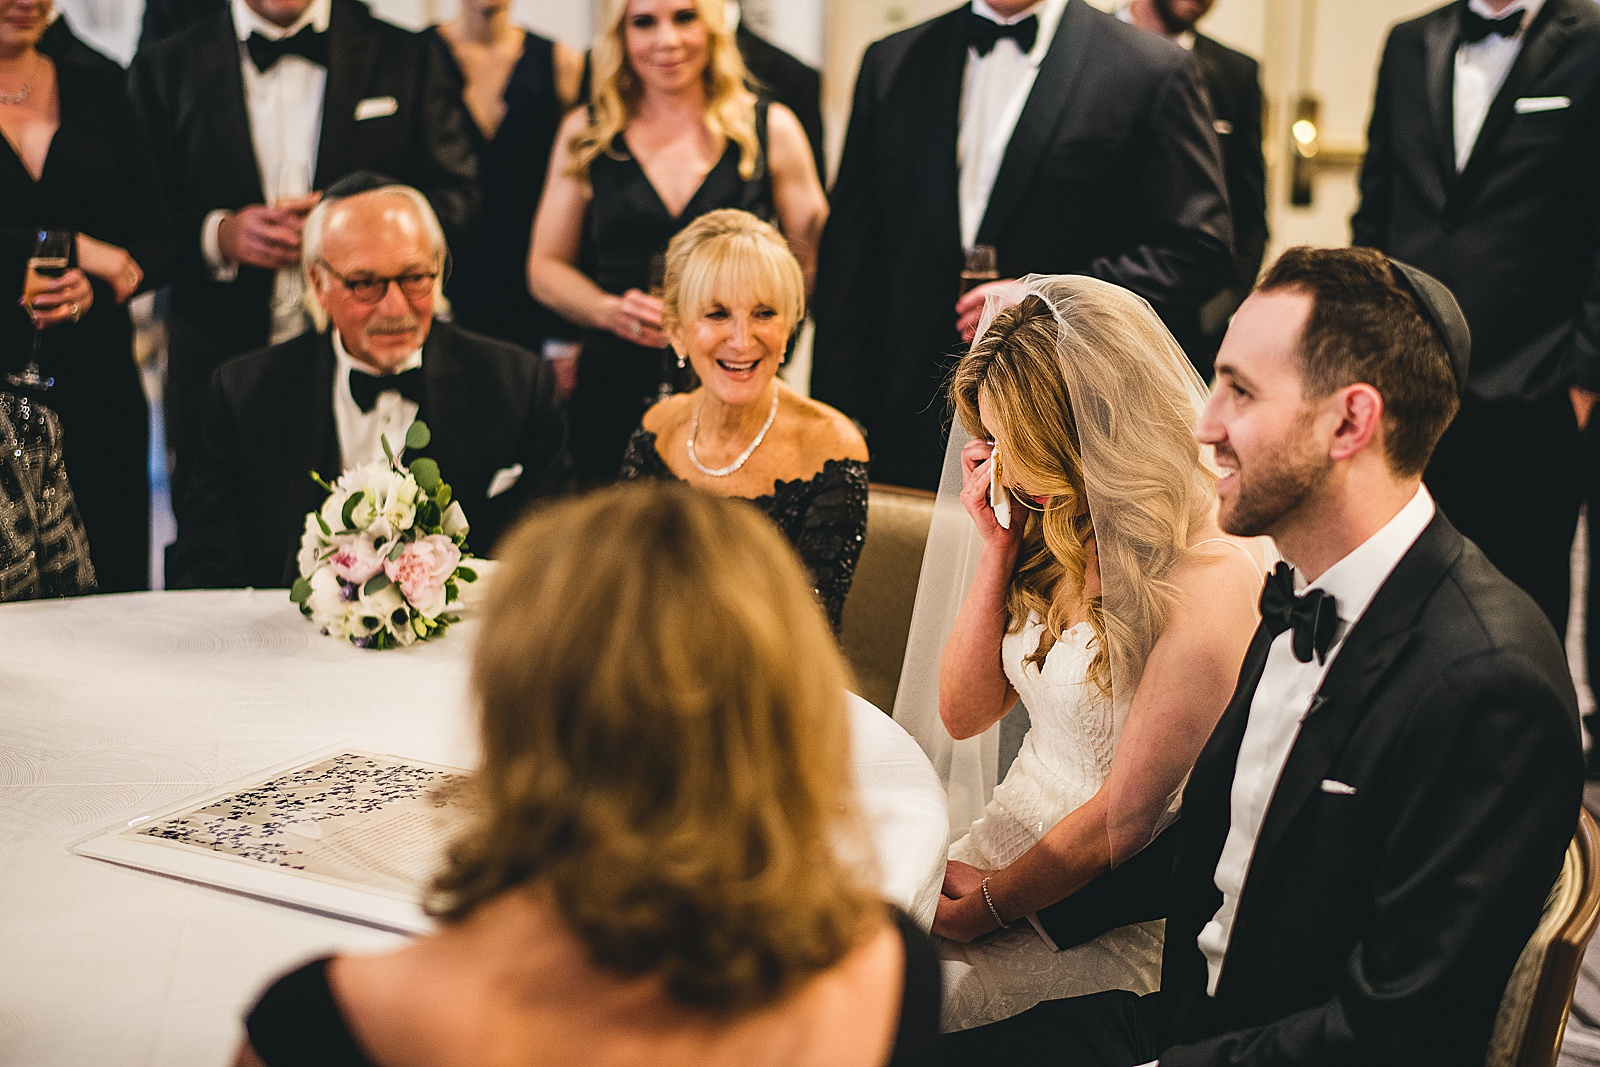 28 jewish wedding photos in chicago - Susie + Eric's Jewish Wedding at the Peninsula Hotel in Chicago